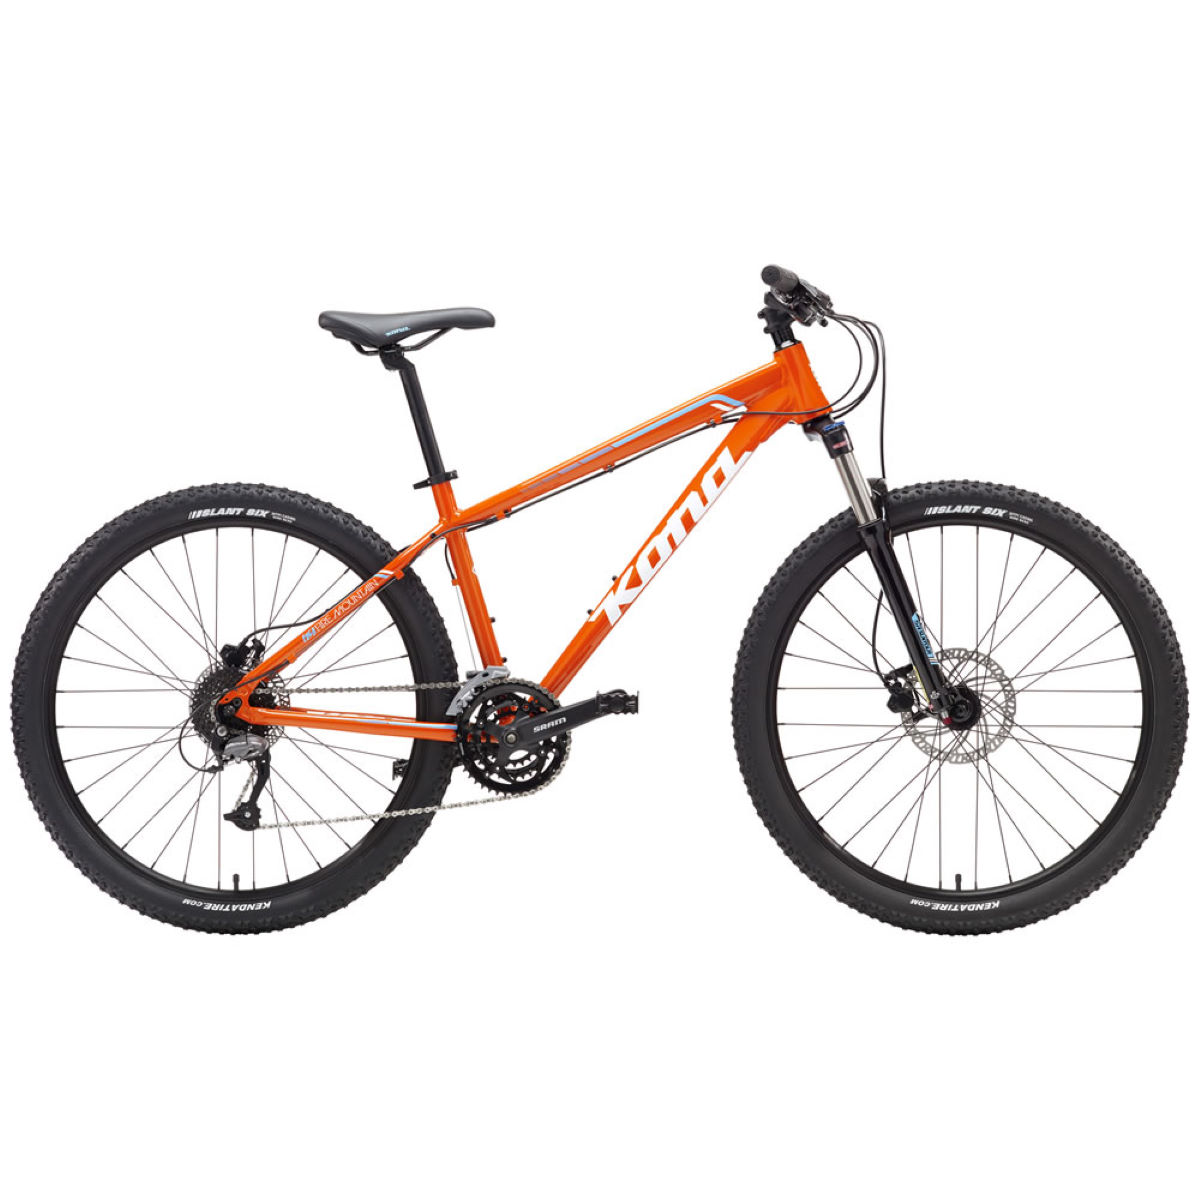 VTT Kona Fire Mountain (2017) - XL Orange VTT semi-rigides